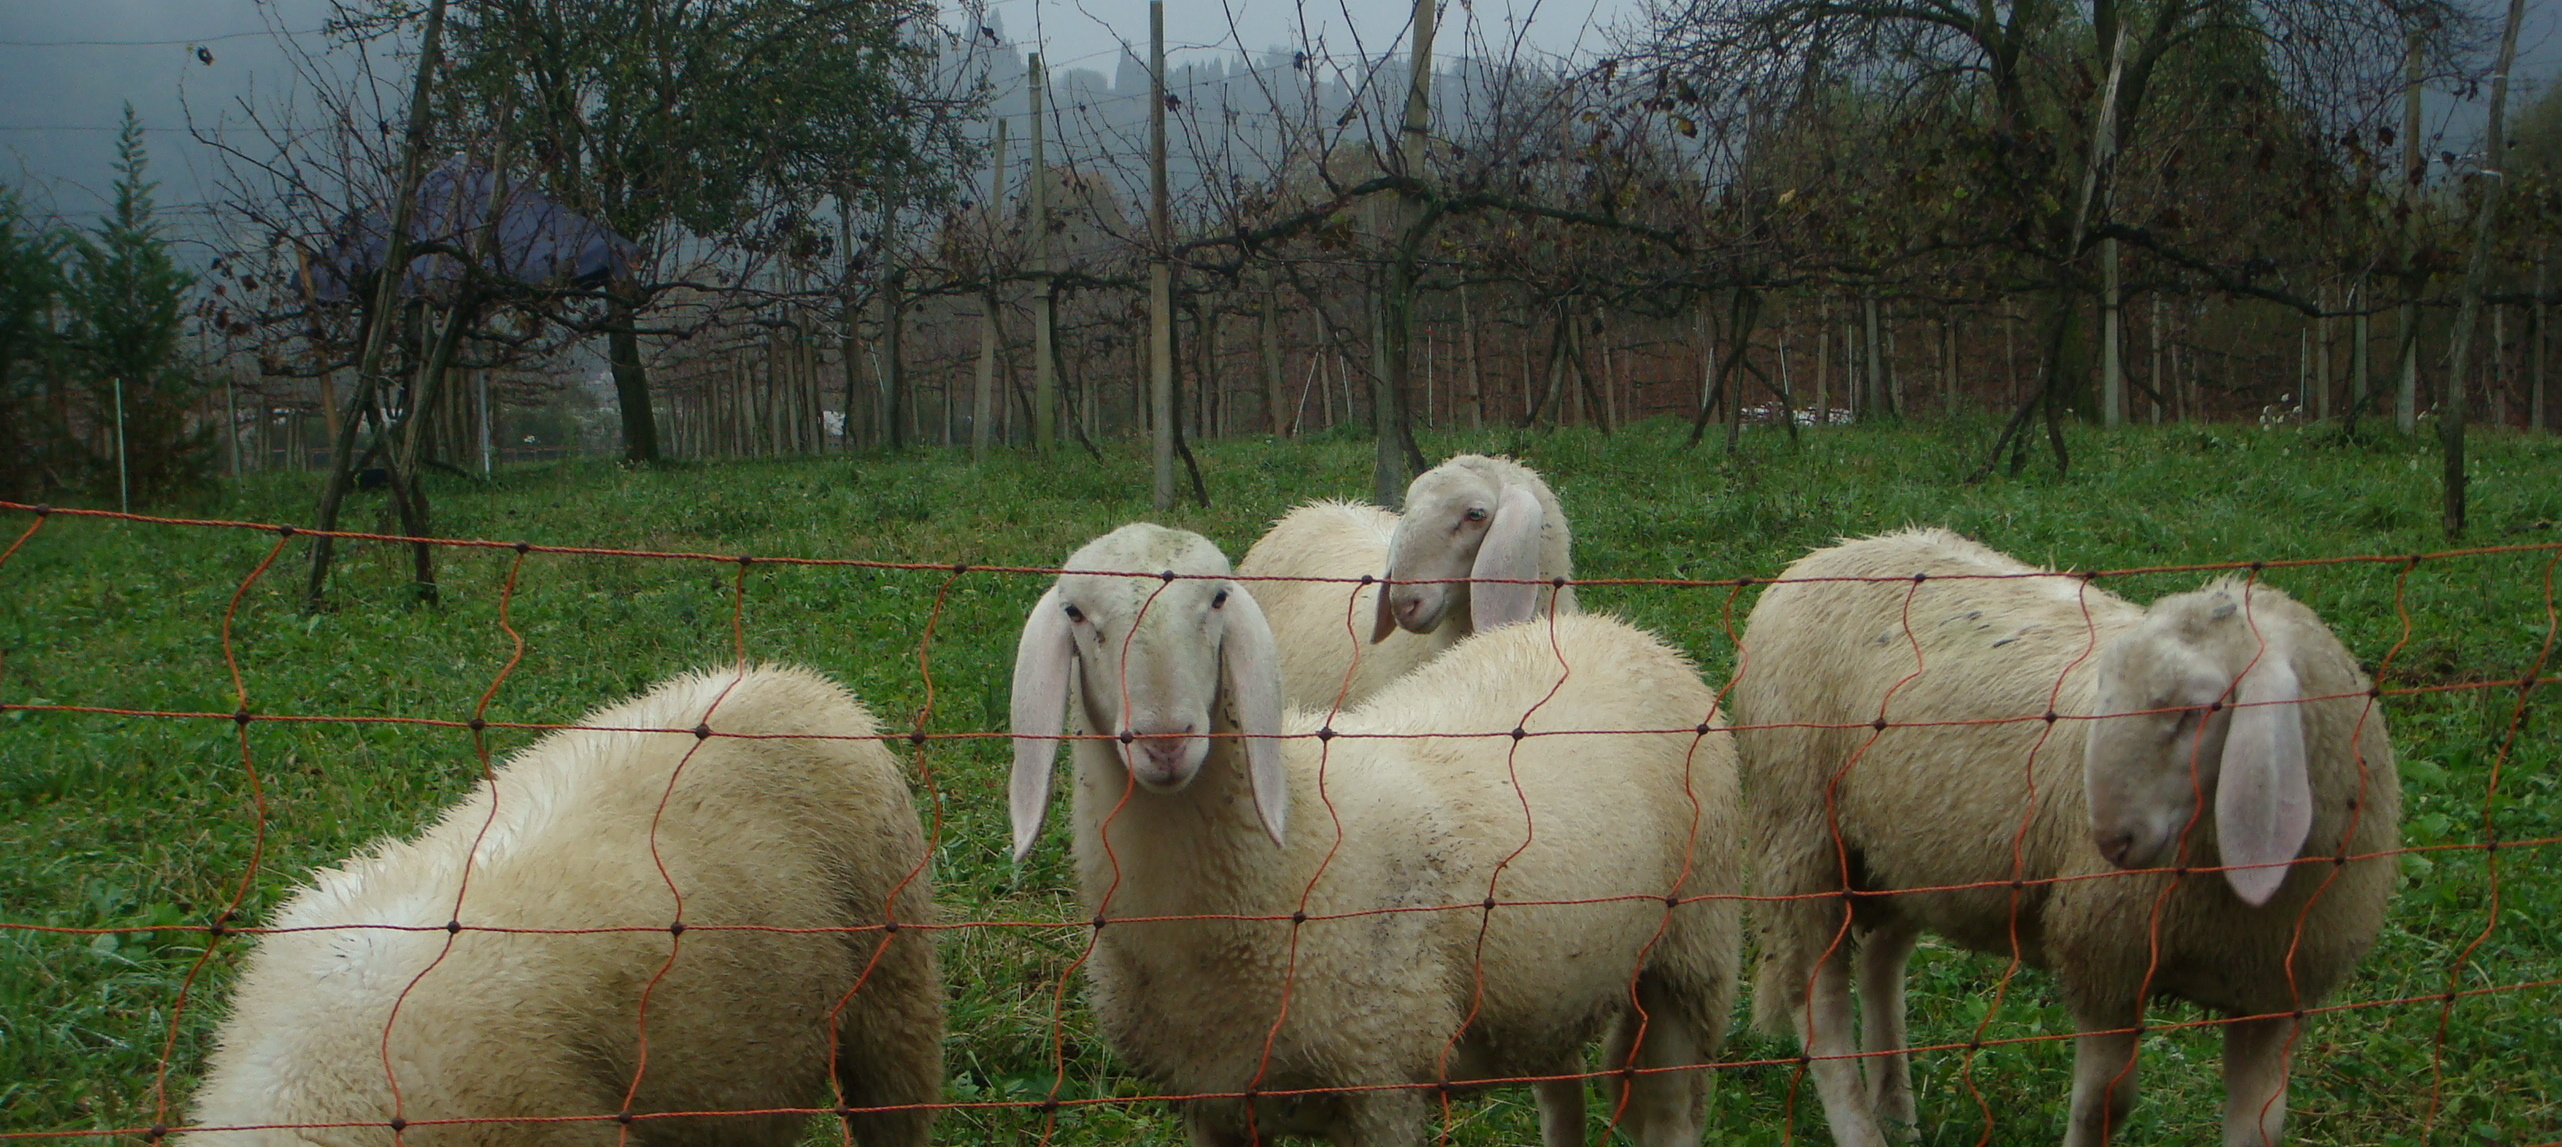 Pecora--Sheep--at the Agriturismo San Michele, Vicenza, Italy